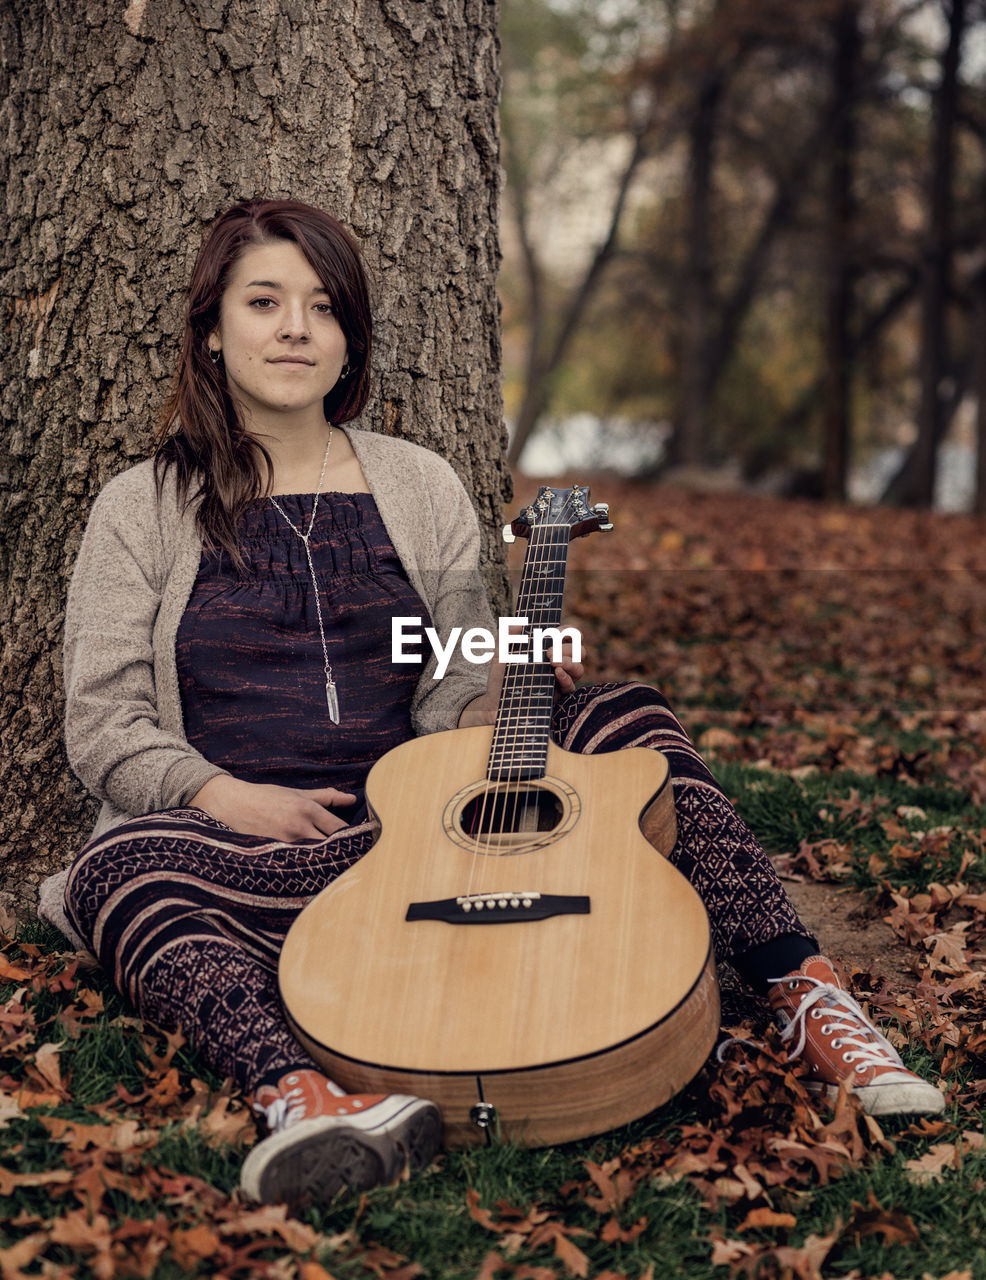 Portrait of young woman holding guitar sitting against tree trunk